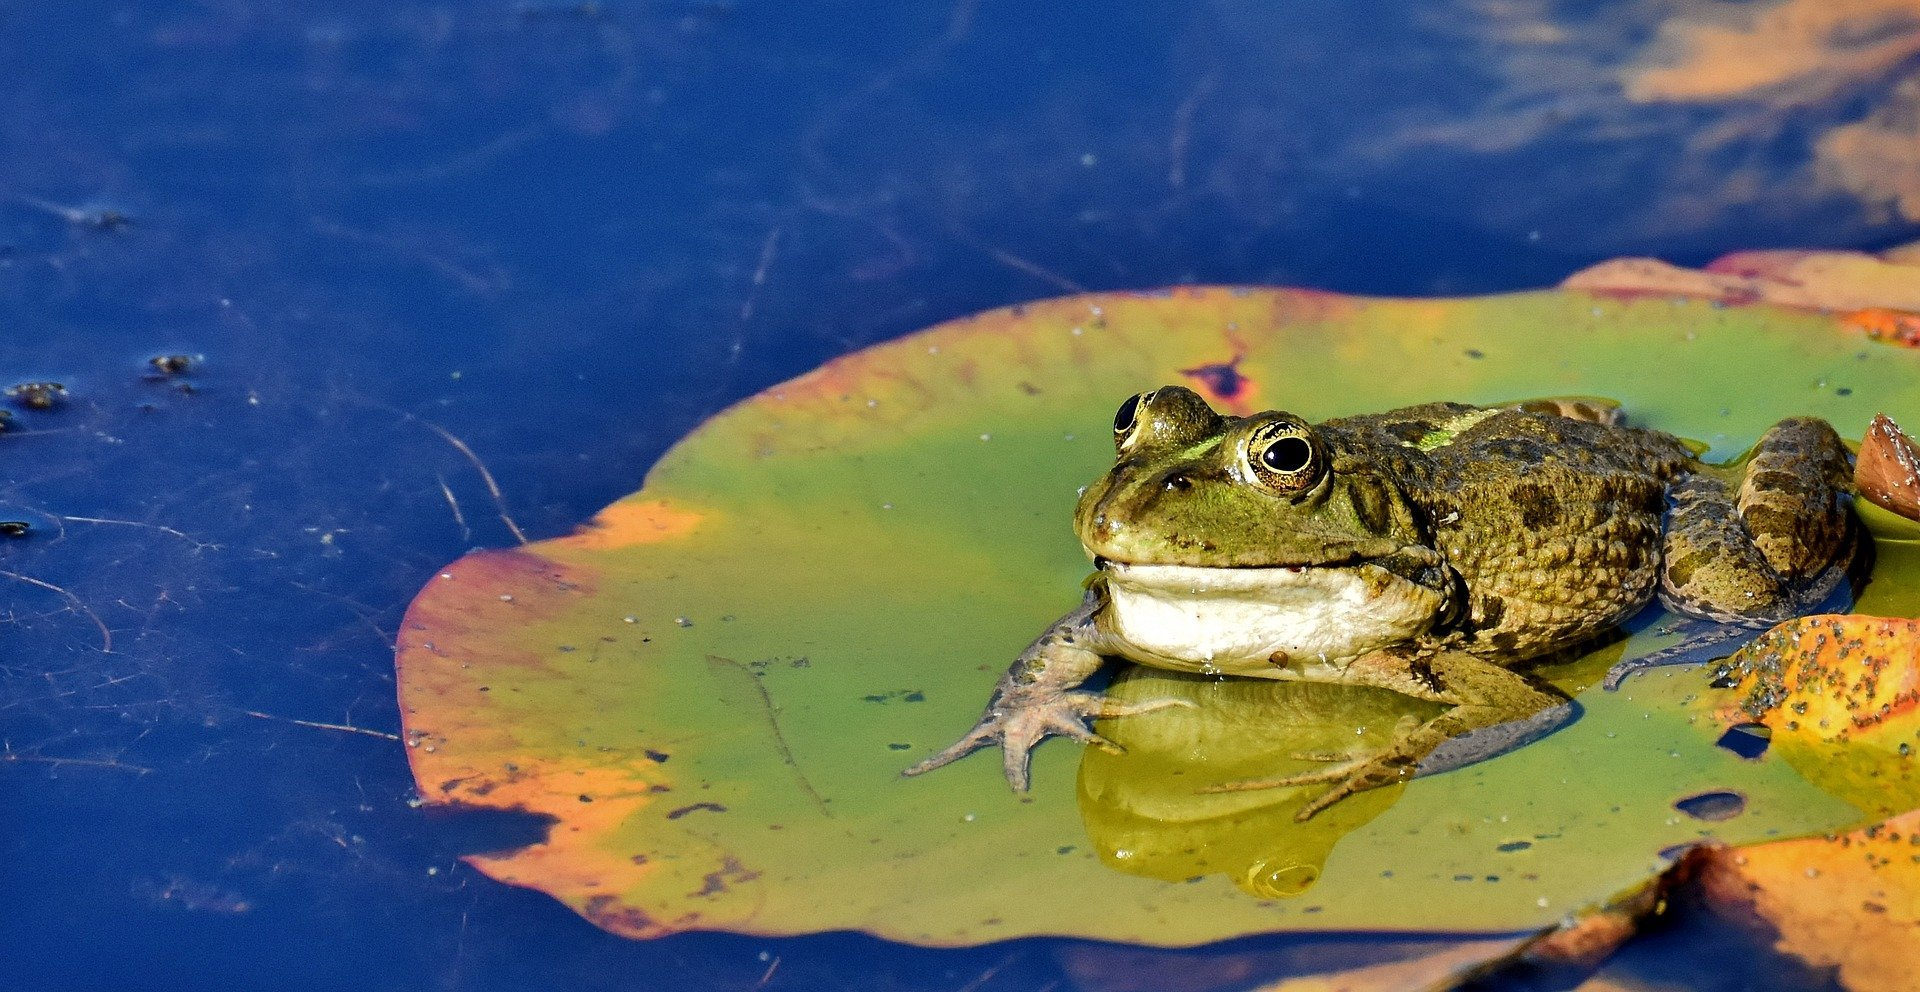 A toad sitting on a leaf in a pond. | Source: Alexas Fotos/Pixabay